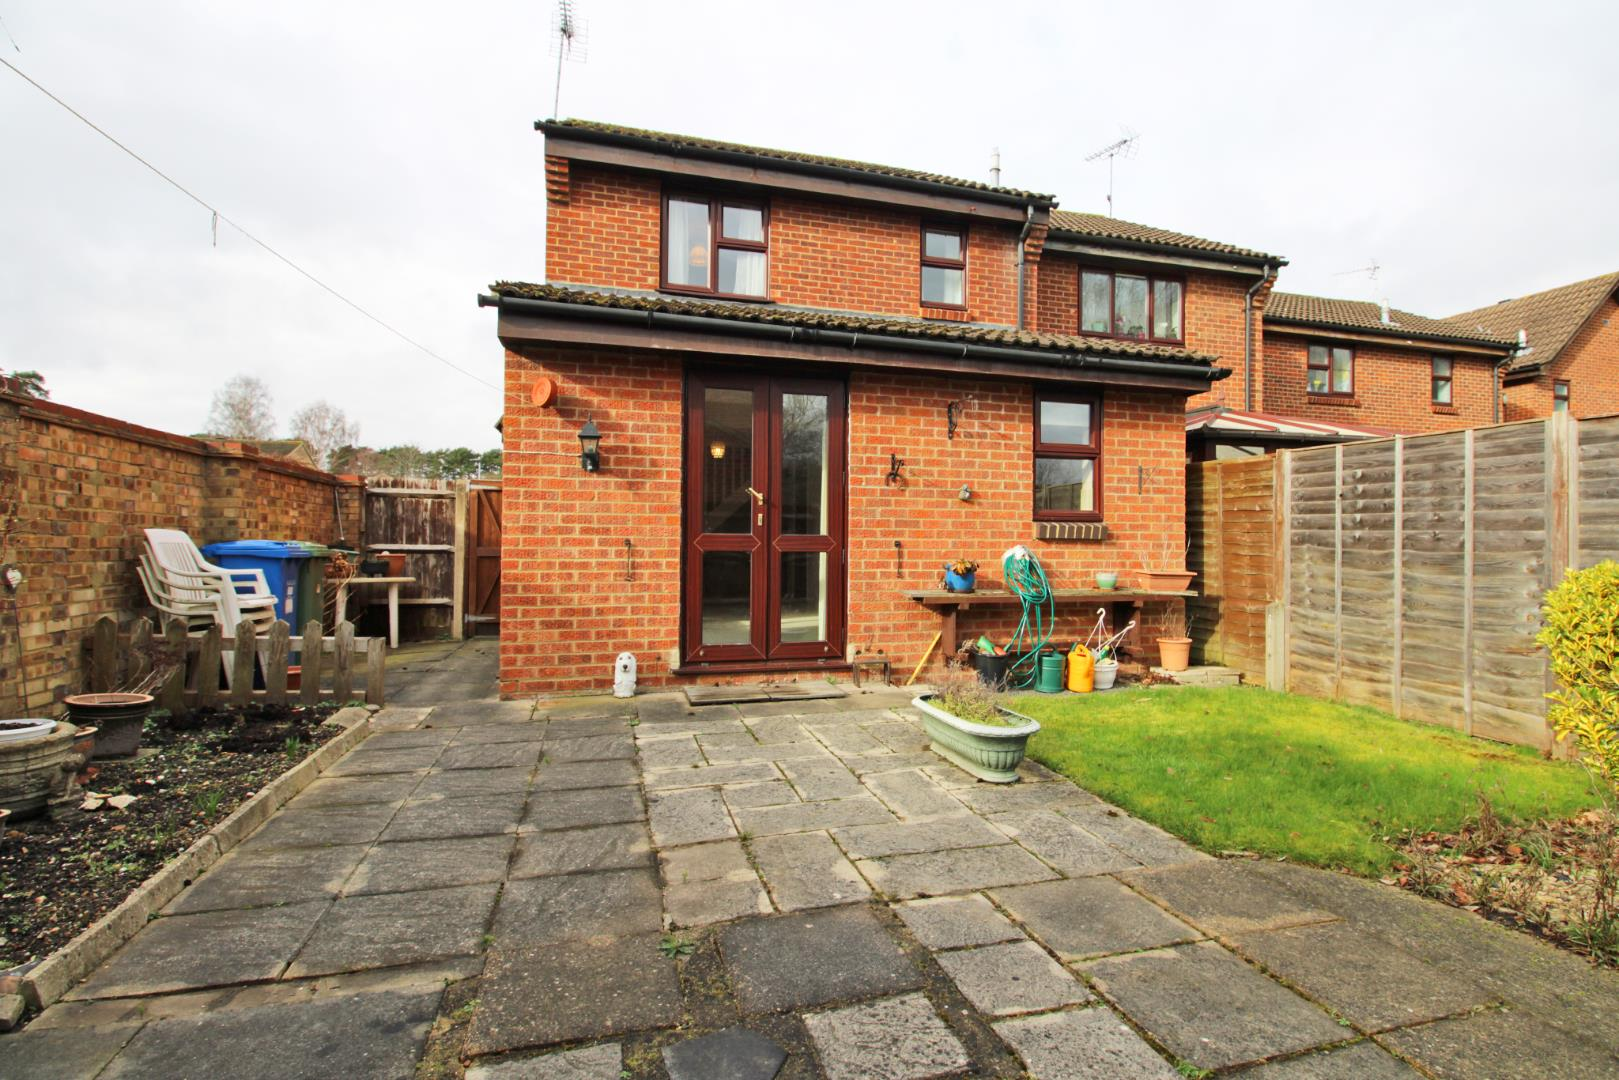 1 bed house for sale in Forest Park, RG12